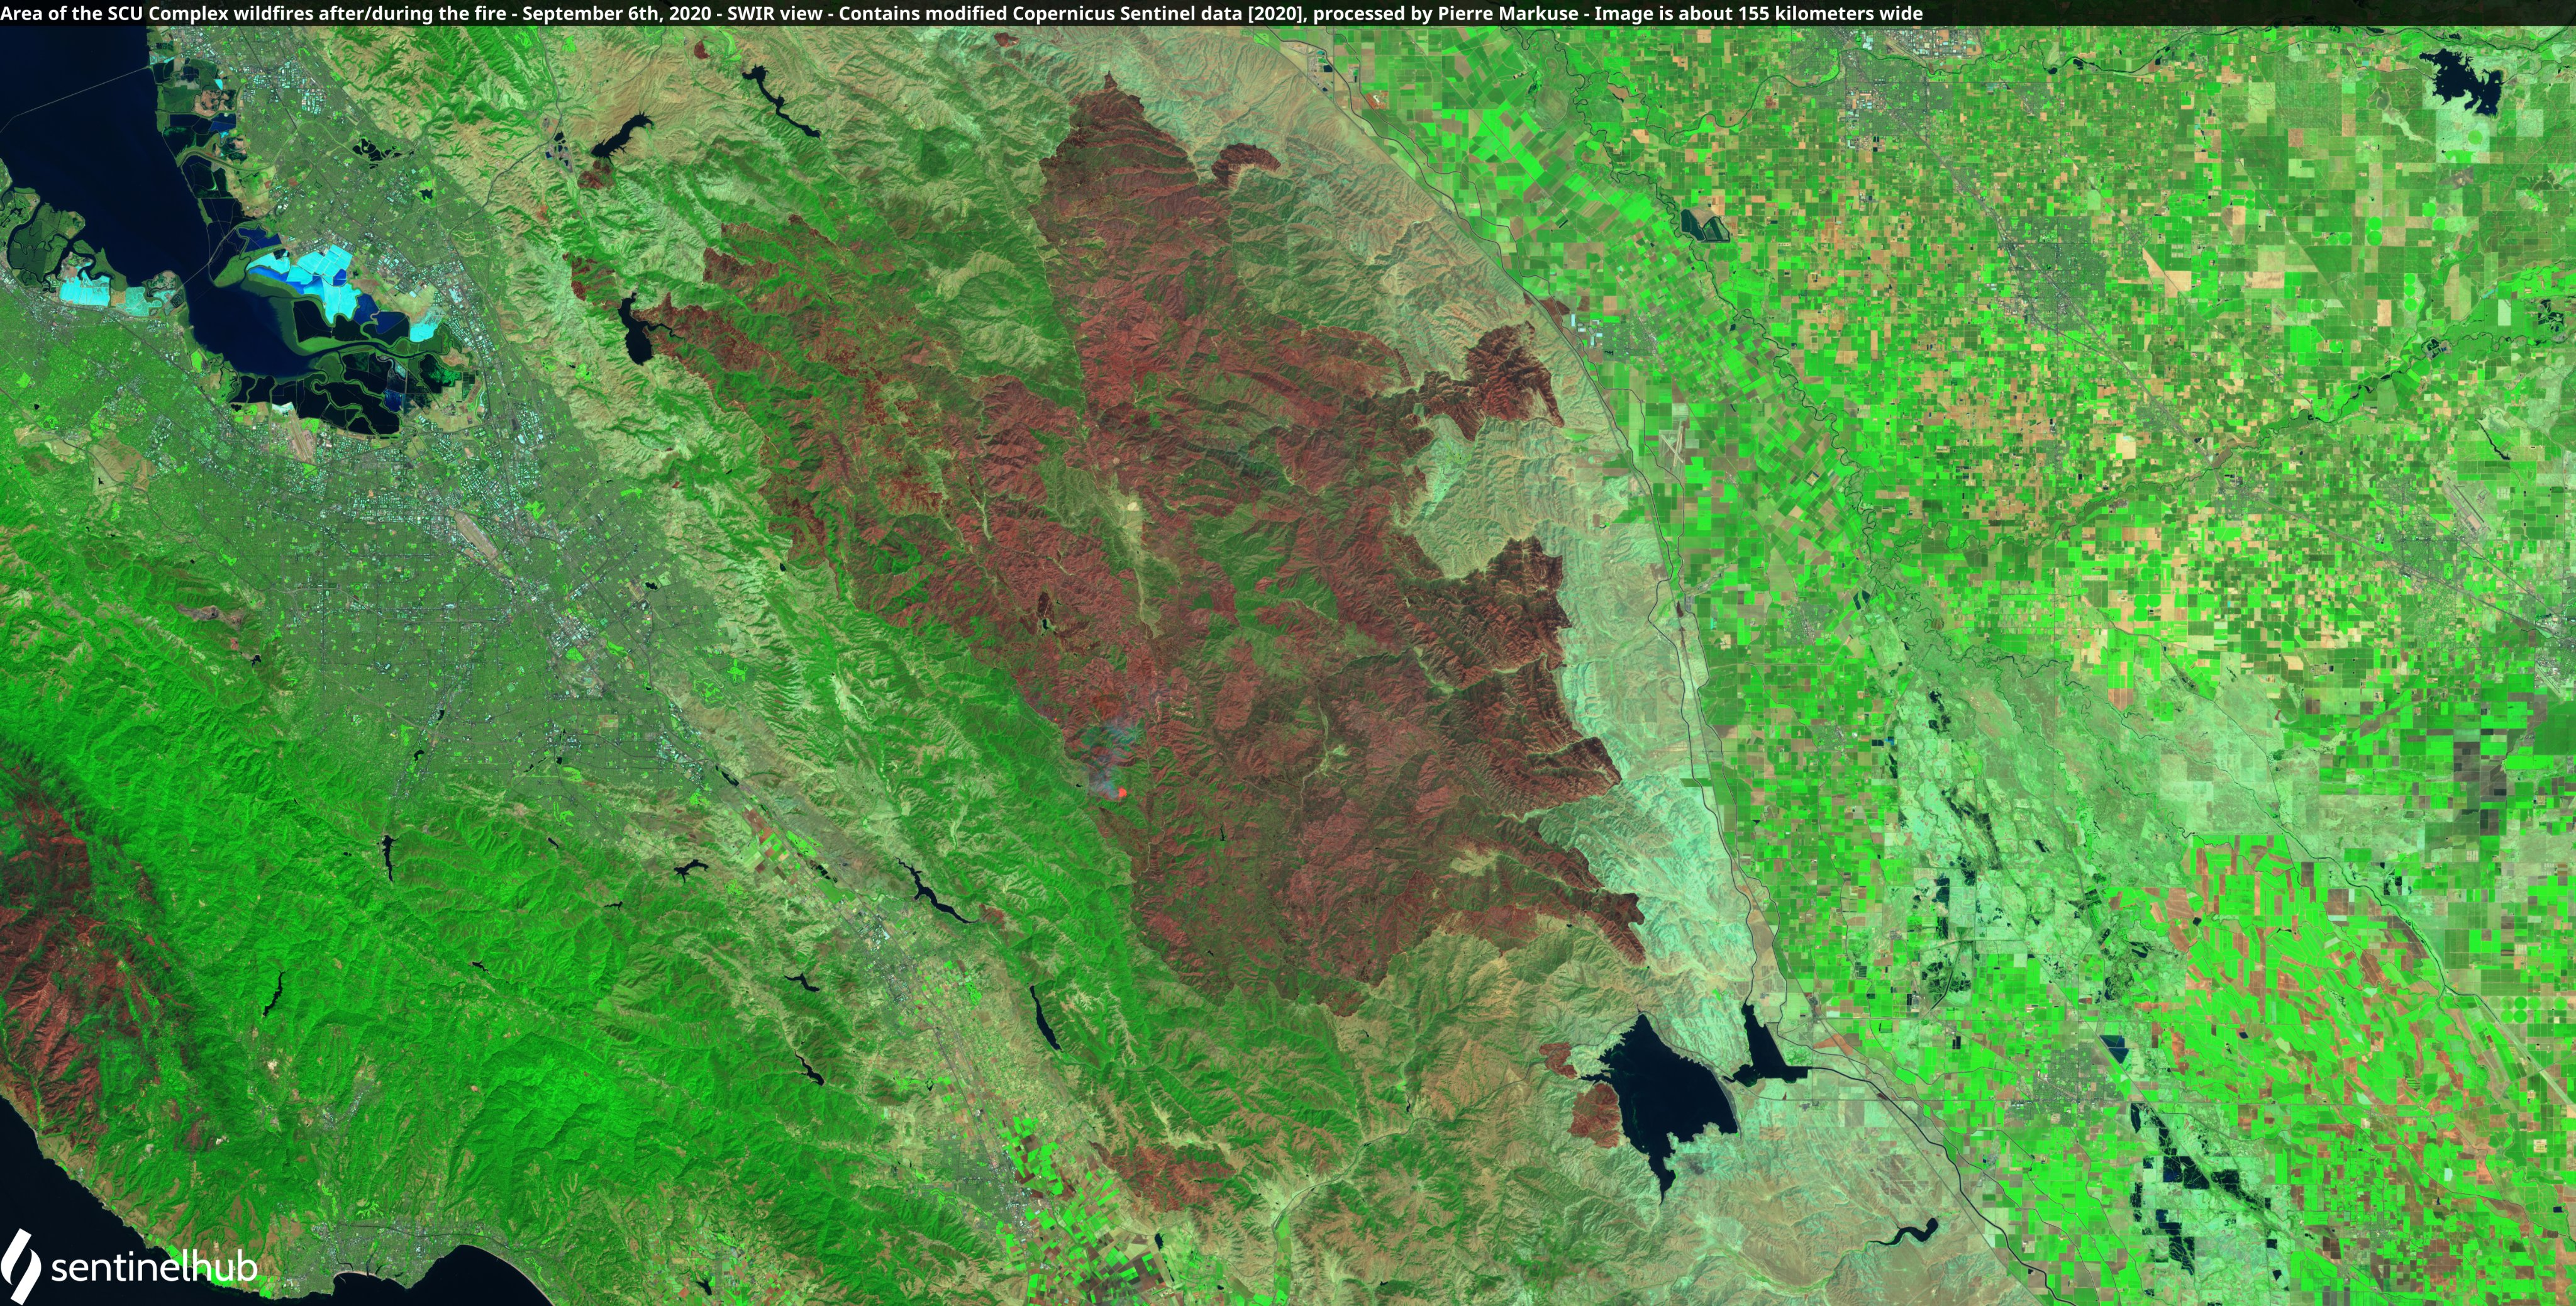 Satellite image of the area of the SCU Lightning Complex fires after/during the fire. Copernicus/Pierre Markuse